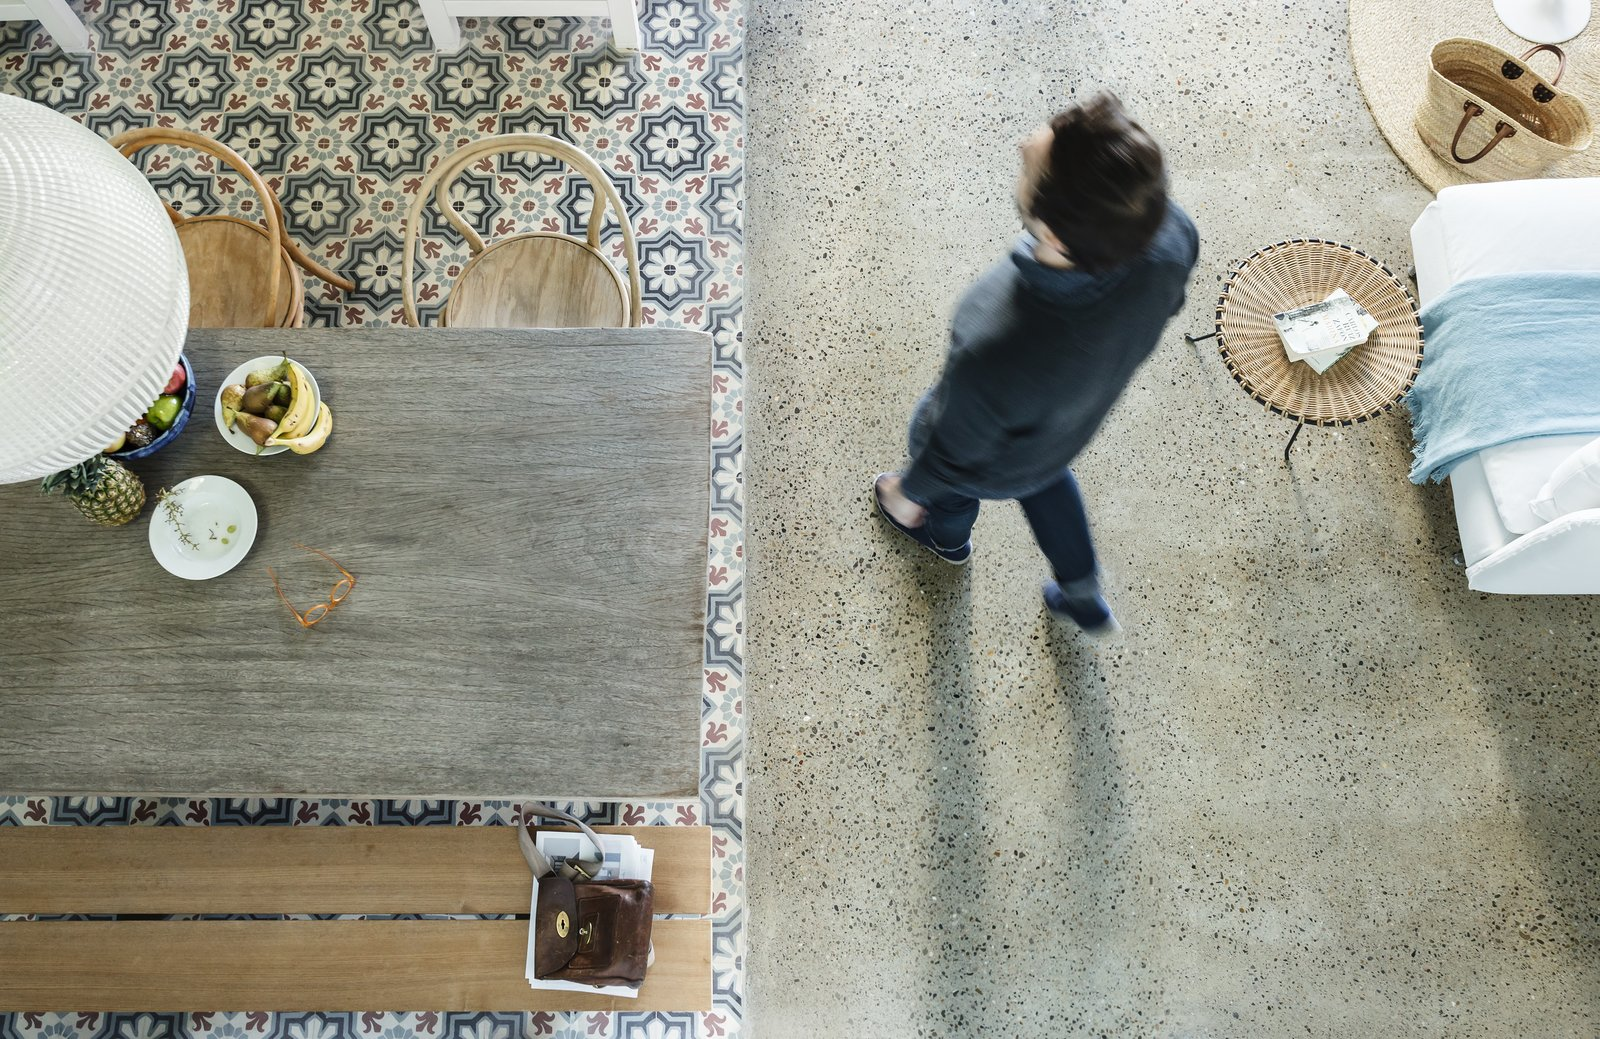 Photo 9 of 16 in A Careful Renovation Brings New Life to a Family's Heritage Home on the Spanish Coast